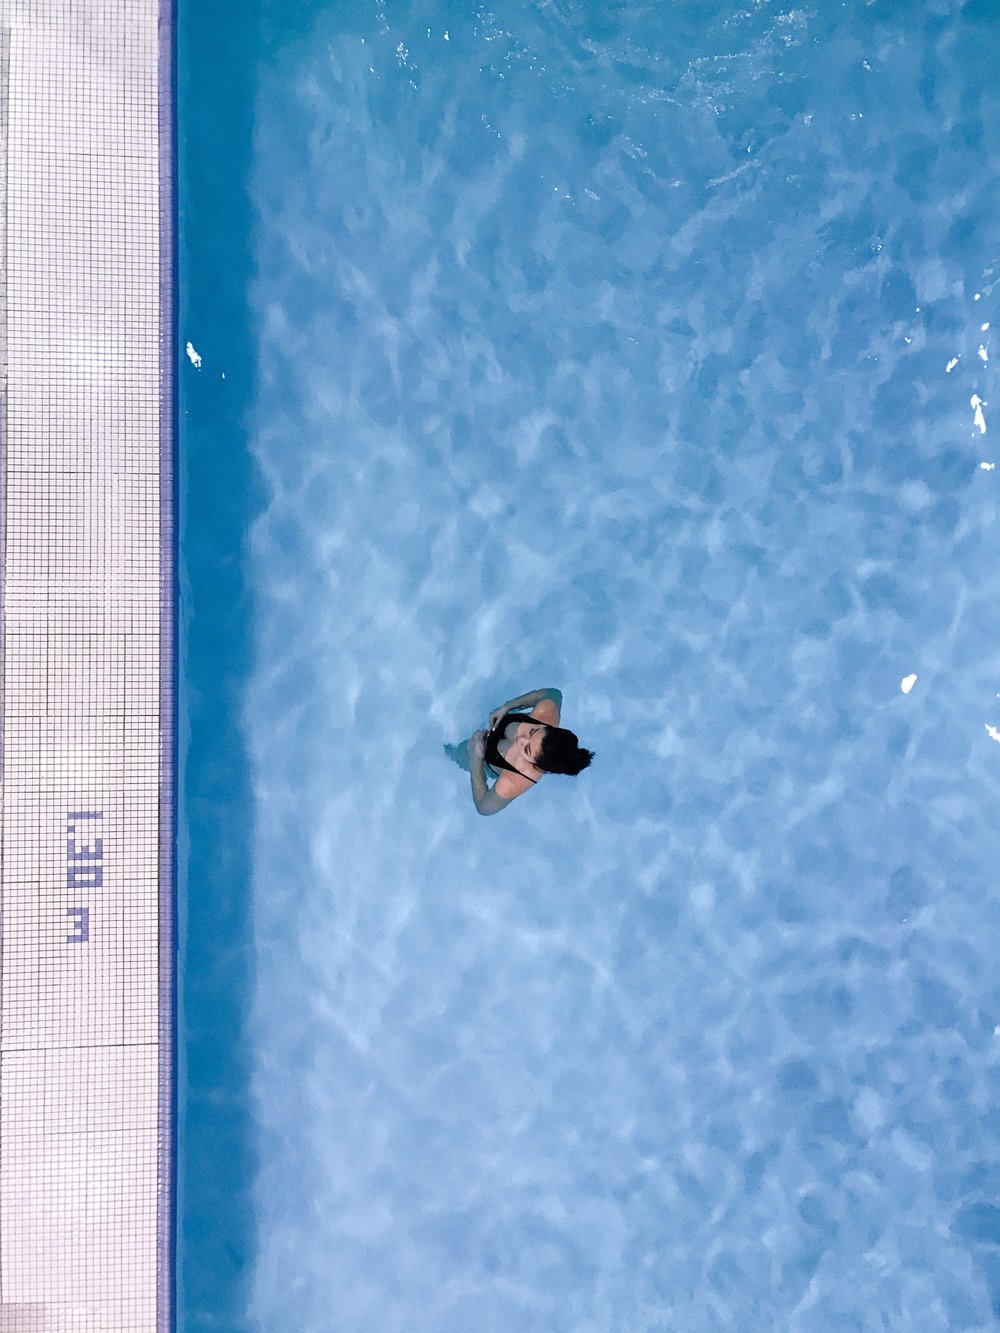 Pool shot from above by a social media photographer